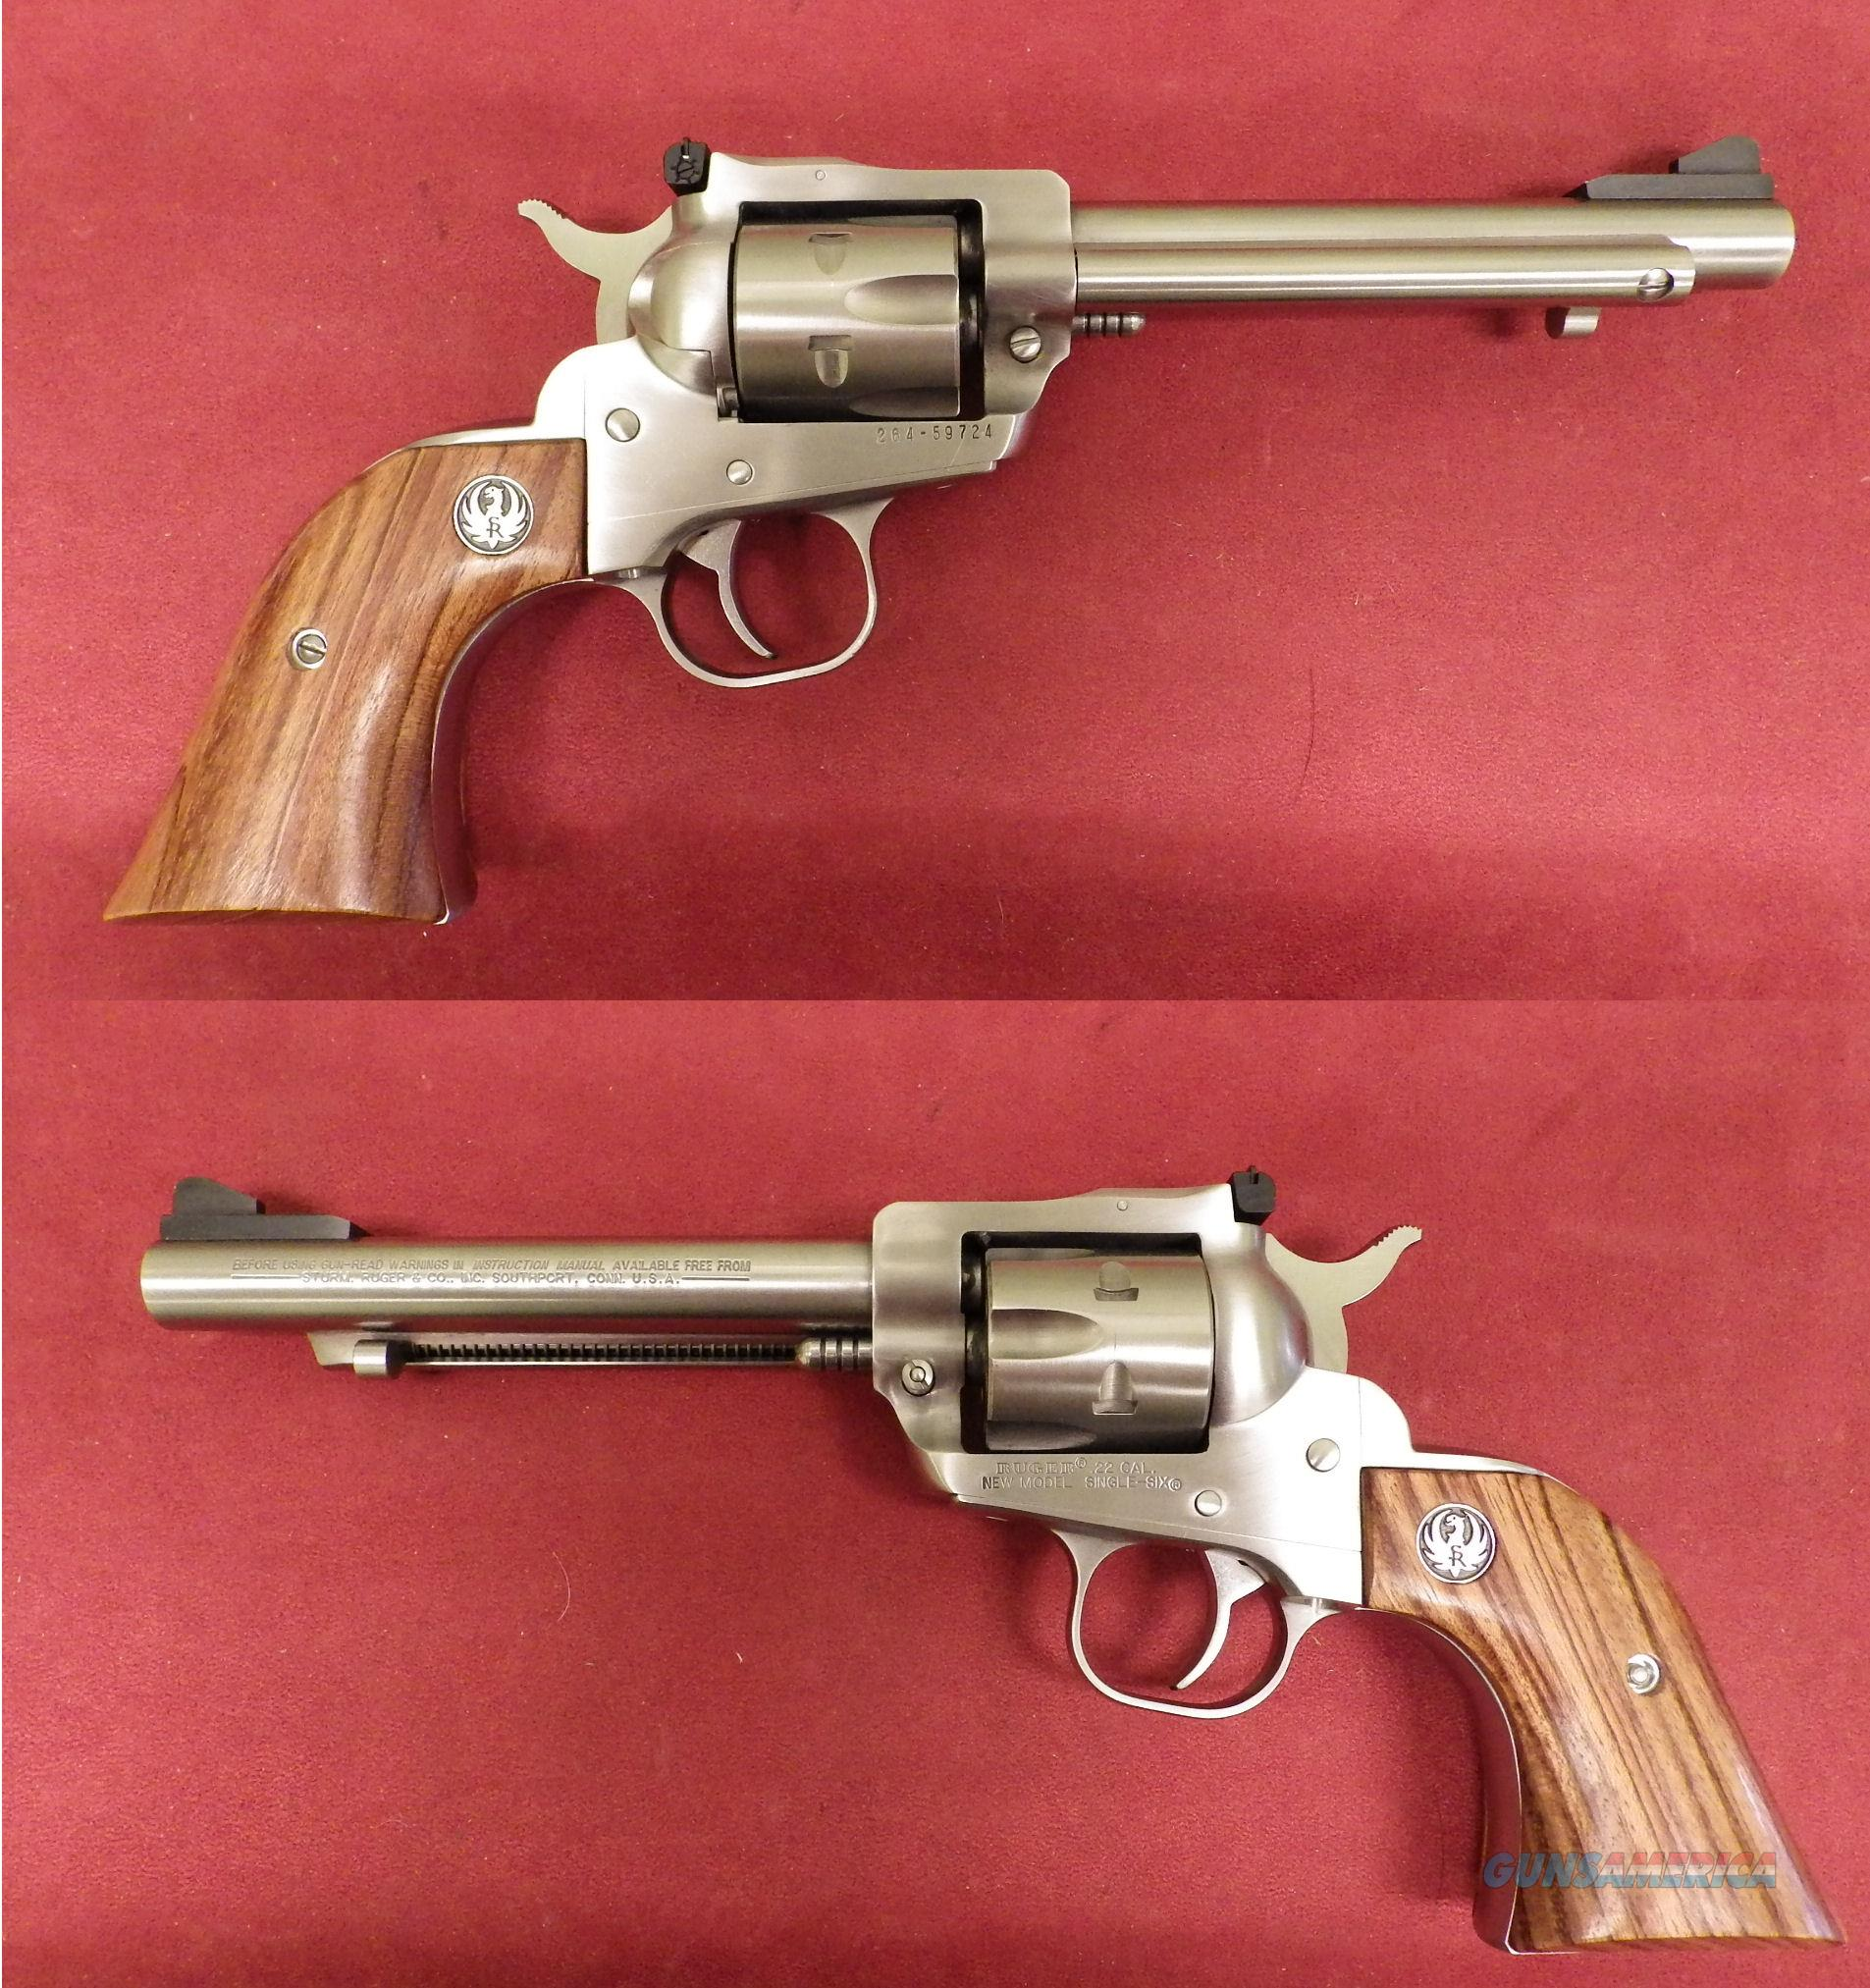 Ruger New Model Single Six  .22LR/.22WMR  *MUST CALL*  Guns > Pistols > Ruger Single Action Revolvers > Single Six Type